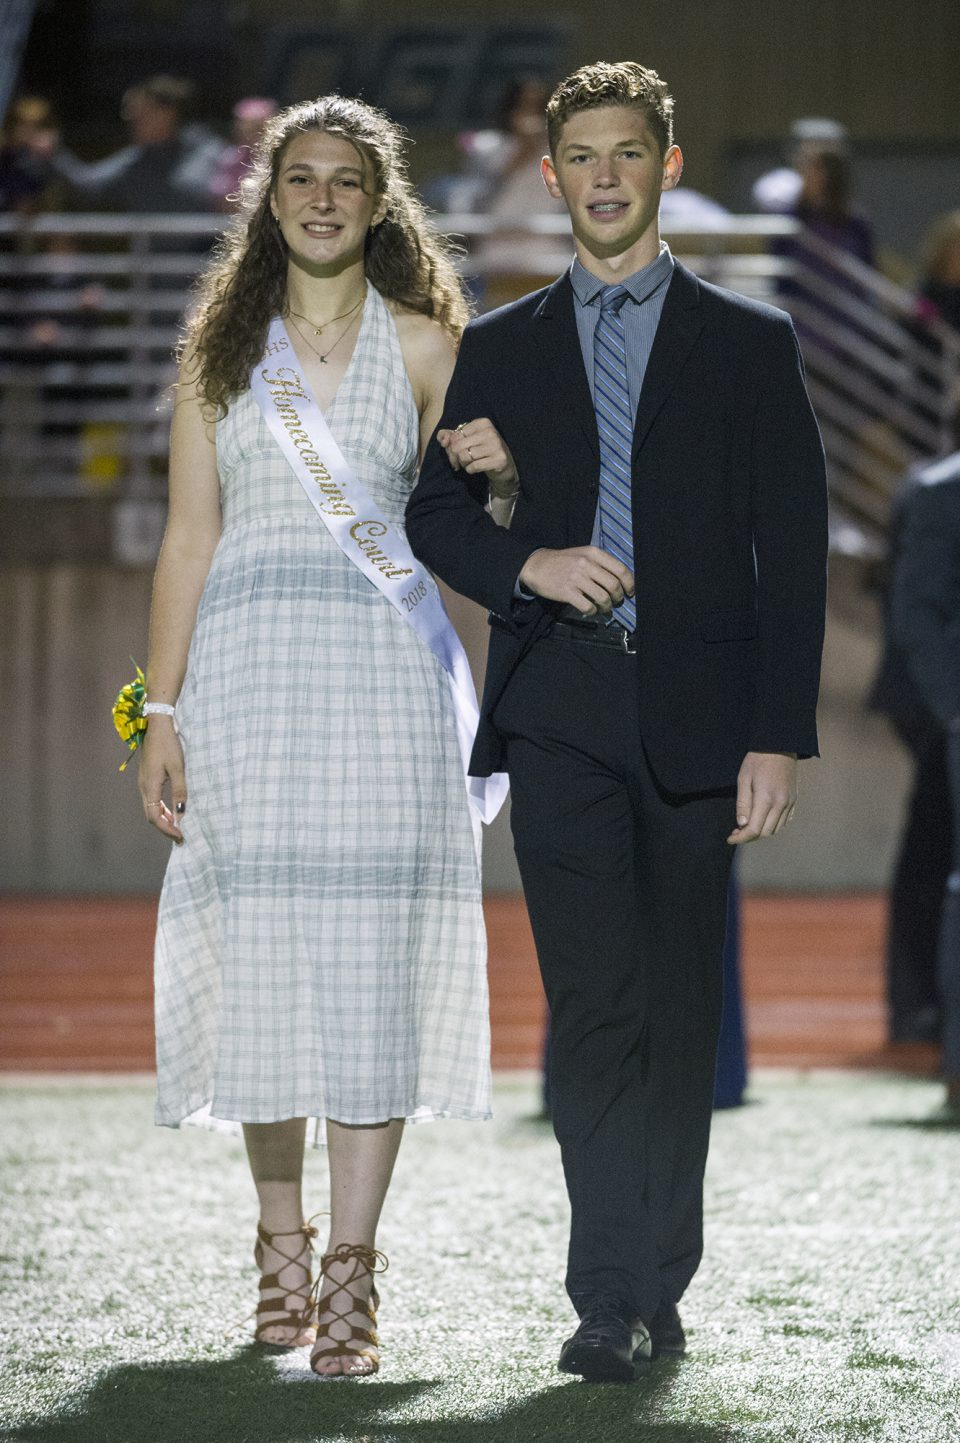 Homecoming queen candidate Mariah Blackburn and escort Tim Rhodenbaugh. Photo by Maya Bell.